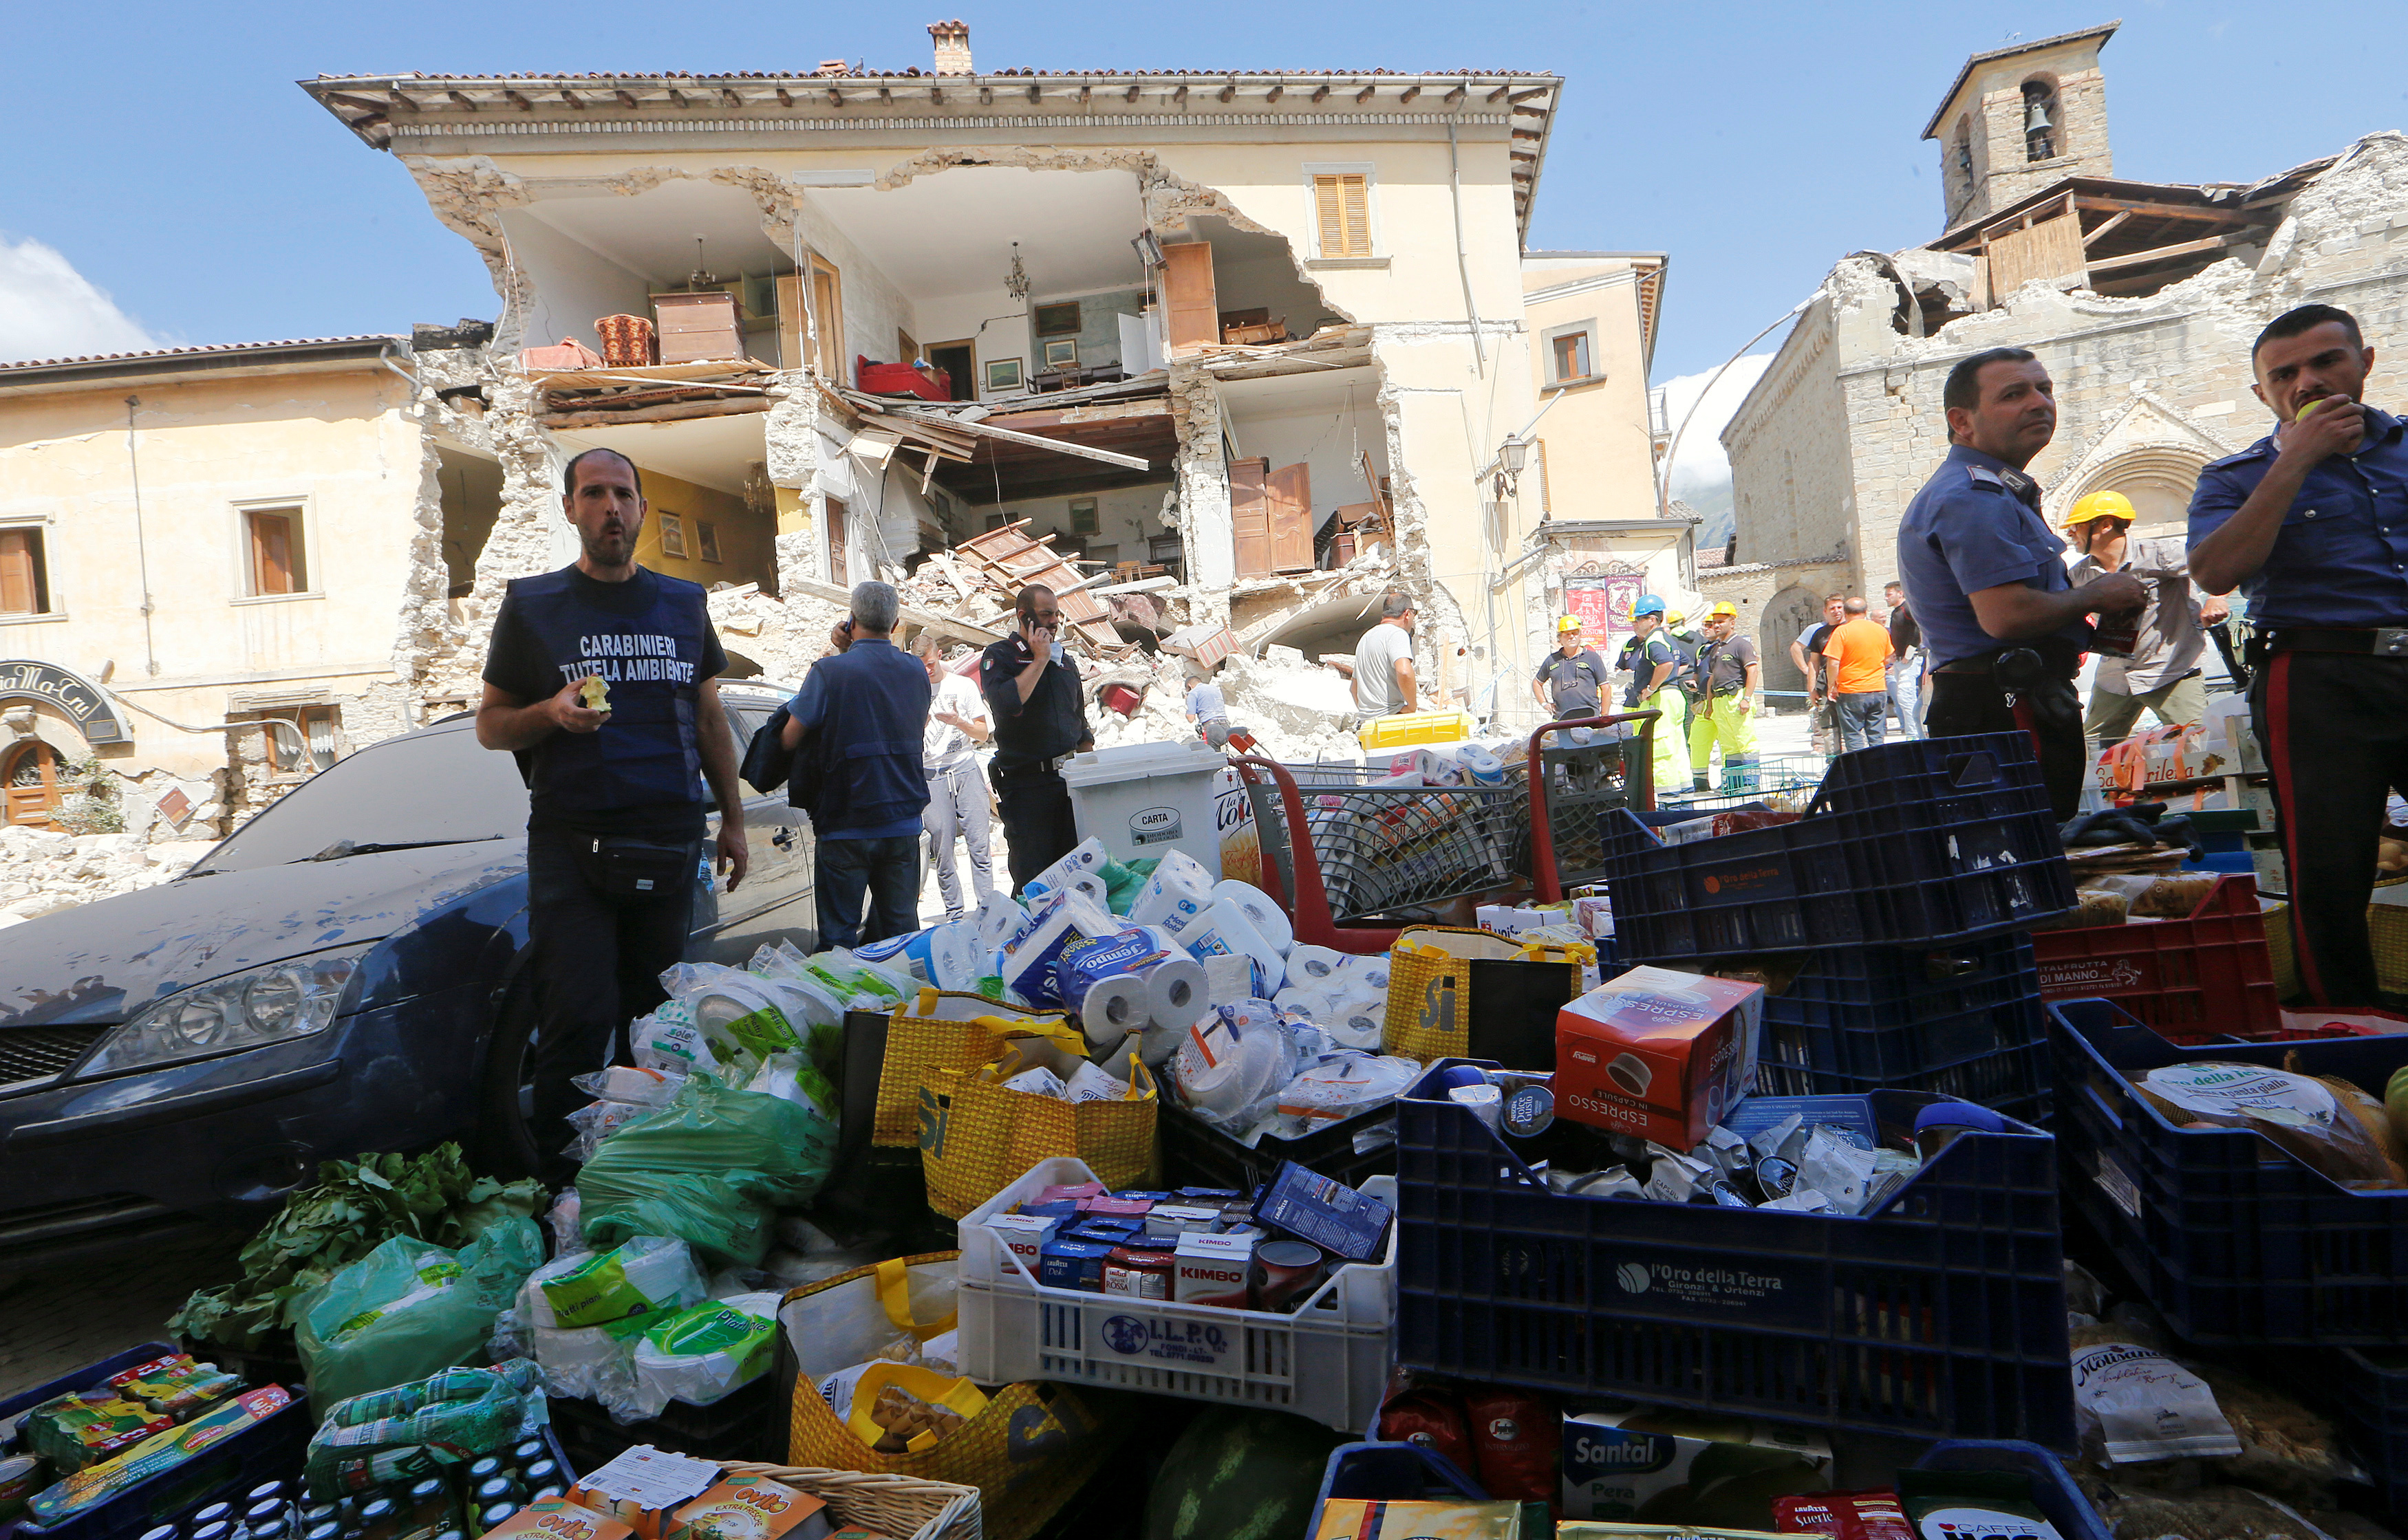 Rescuers prepare food for distribution in Amatrice on Wednesday. Photo by Ciro De Luca/Reuters